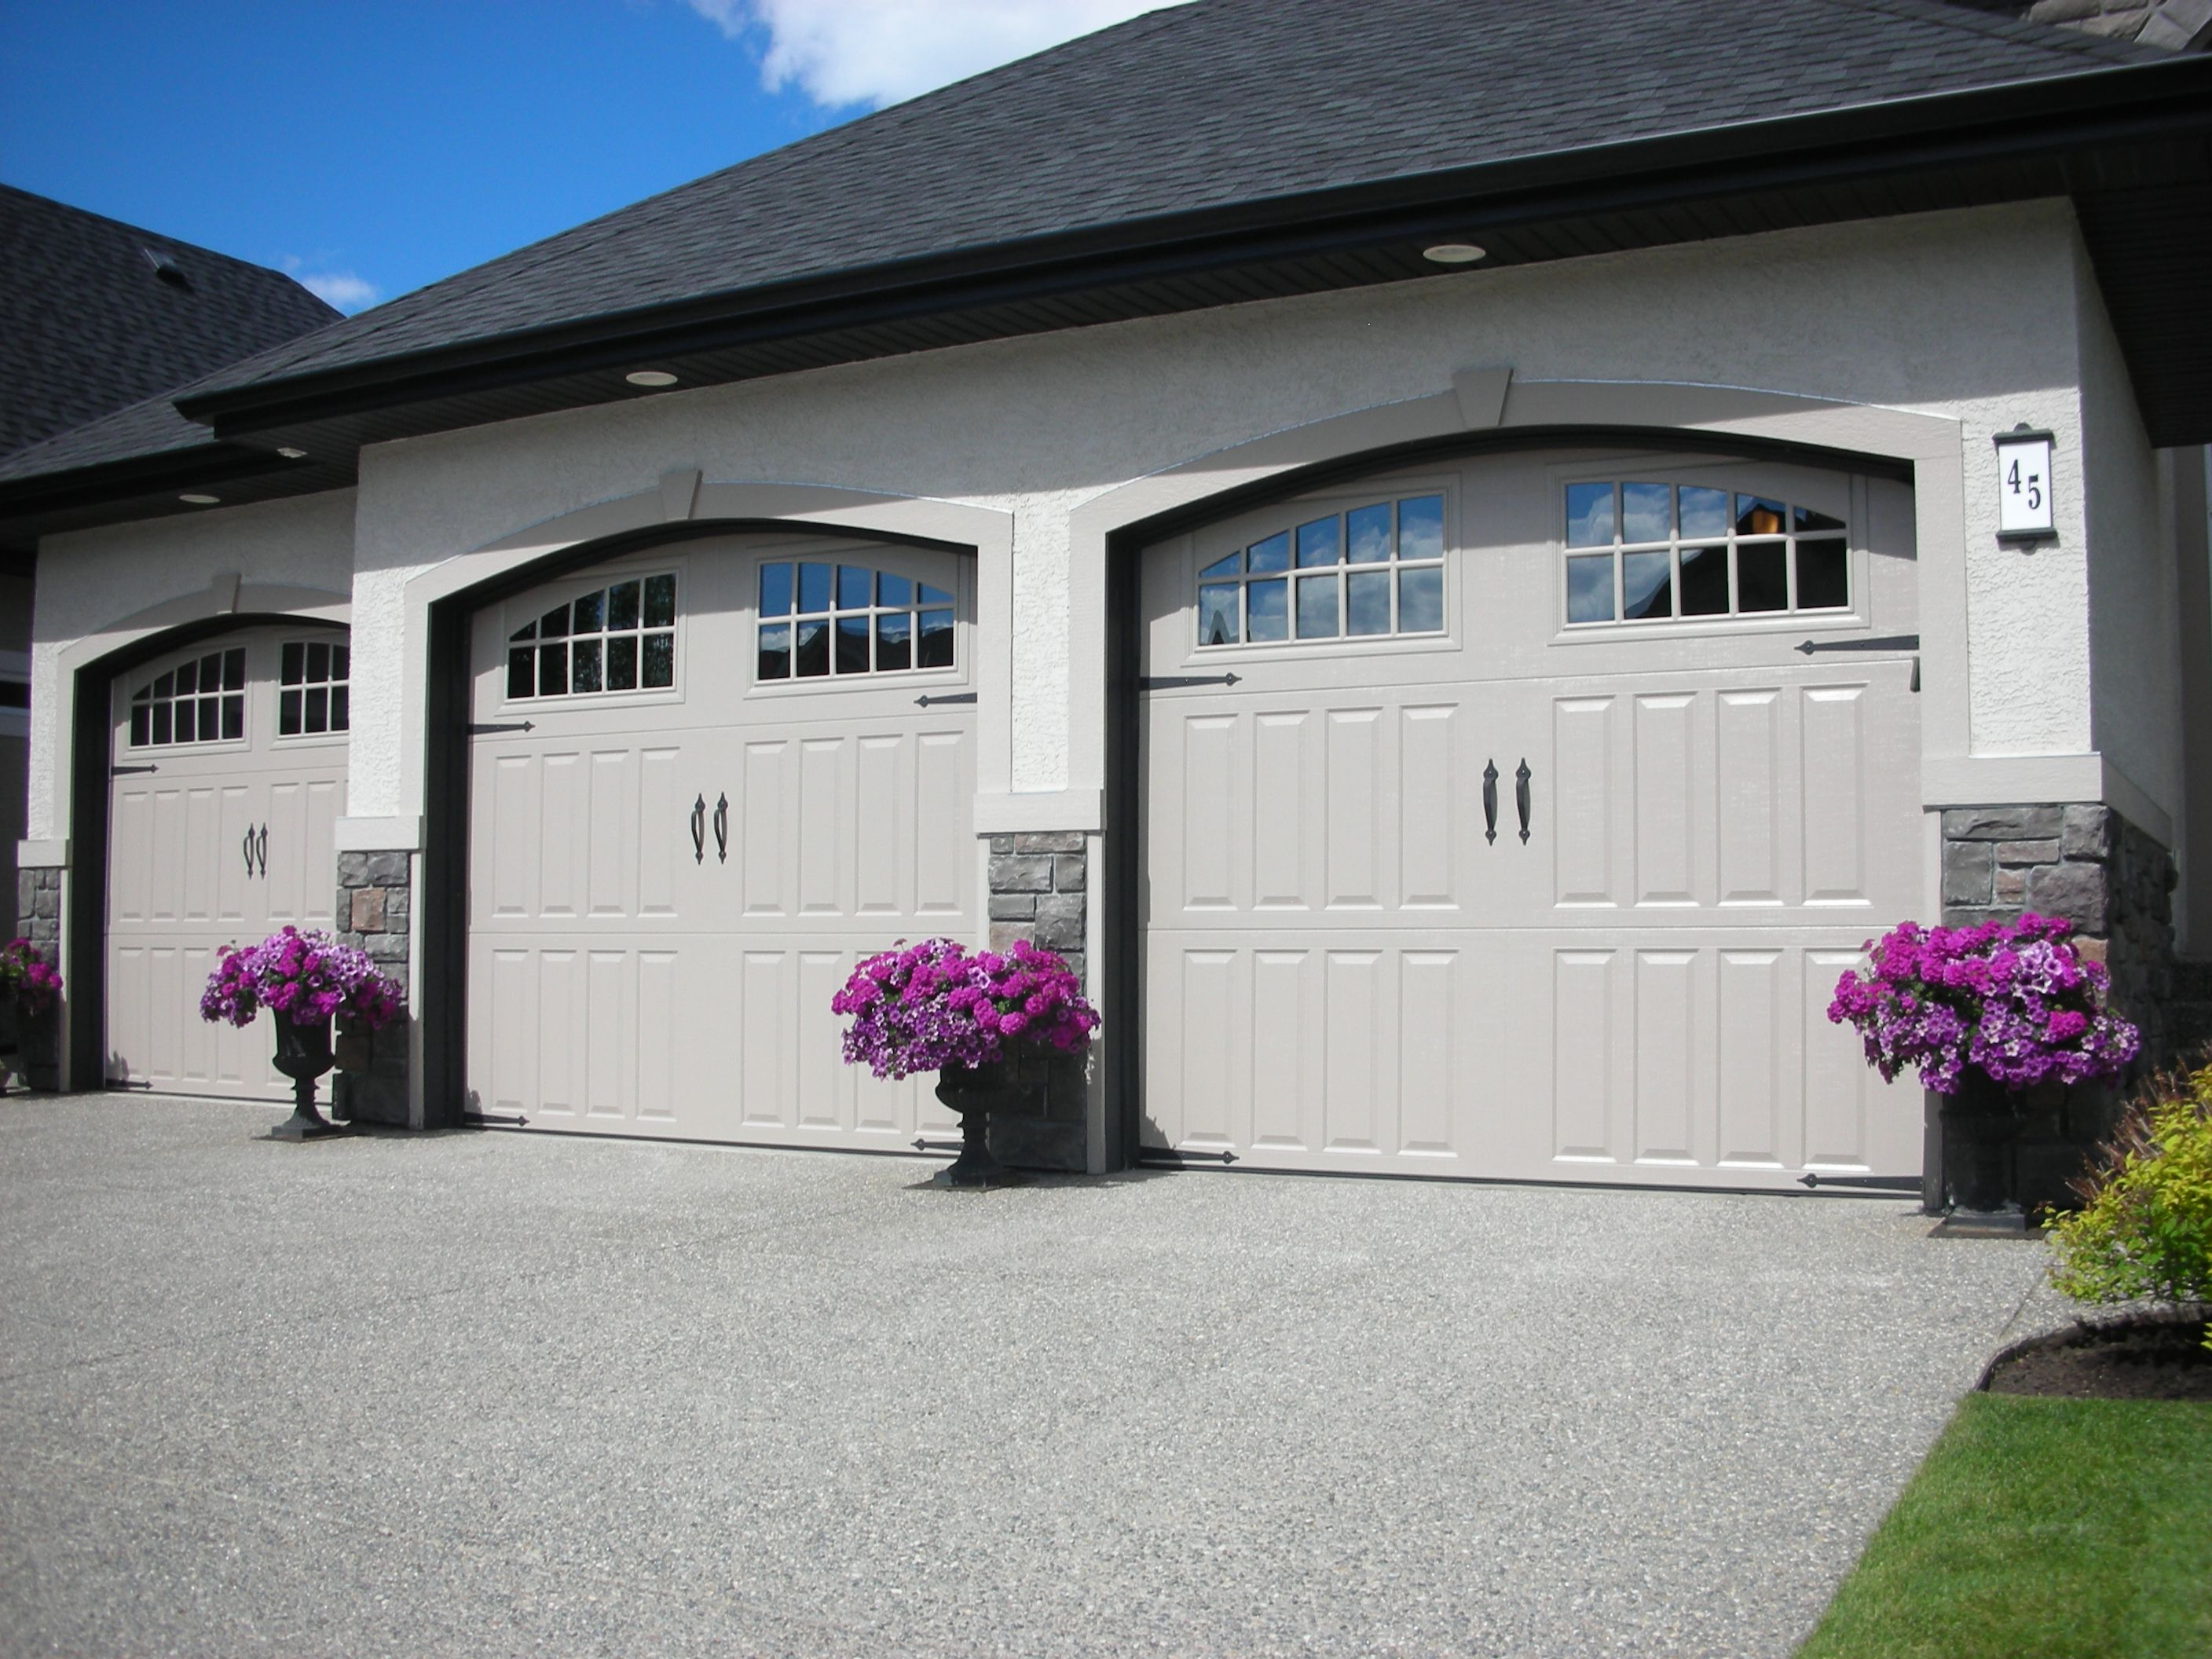 Amarr classica bordeaux garage door with seine windows visit www amarr classica bordeaux garage door with seine windows visit amarr rubansaba